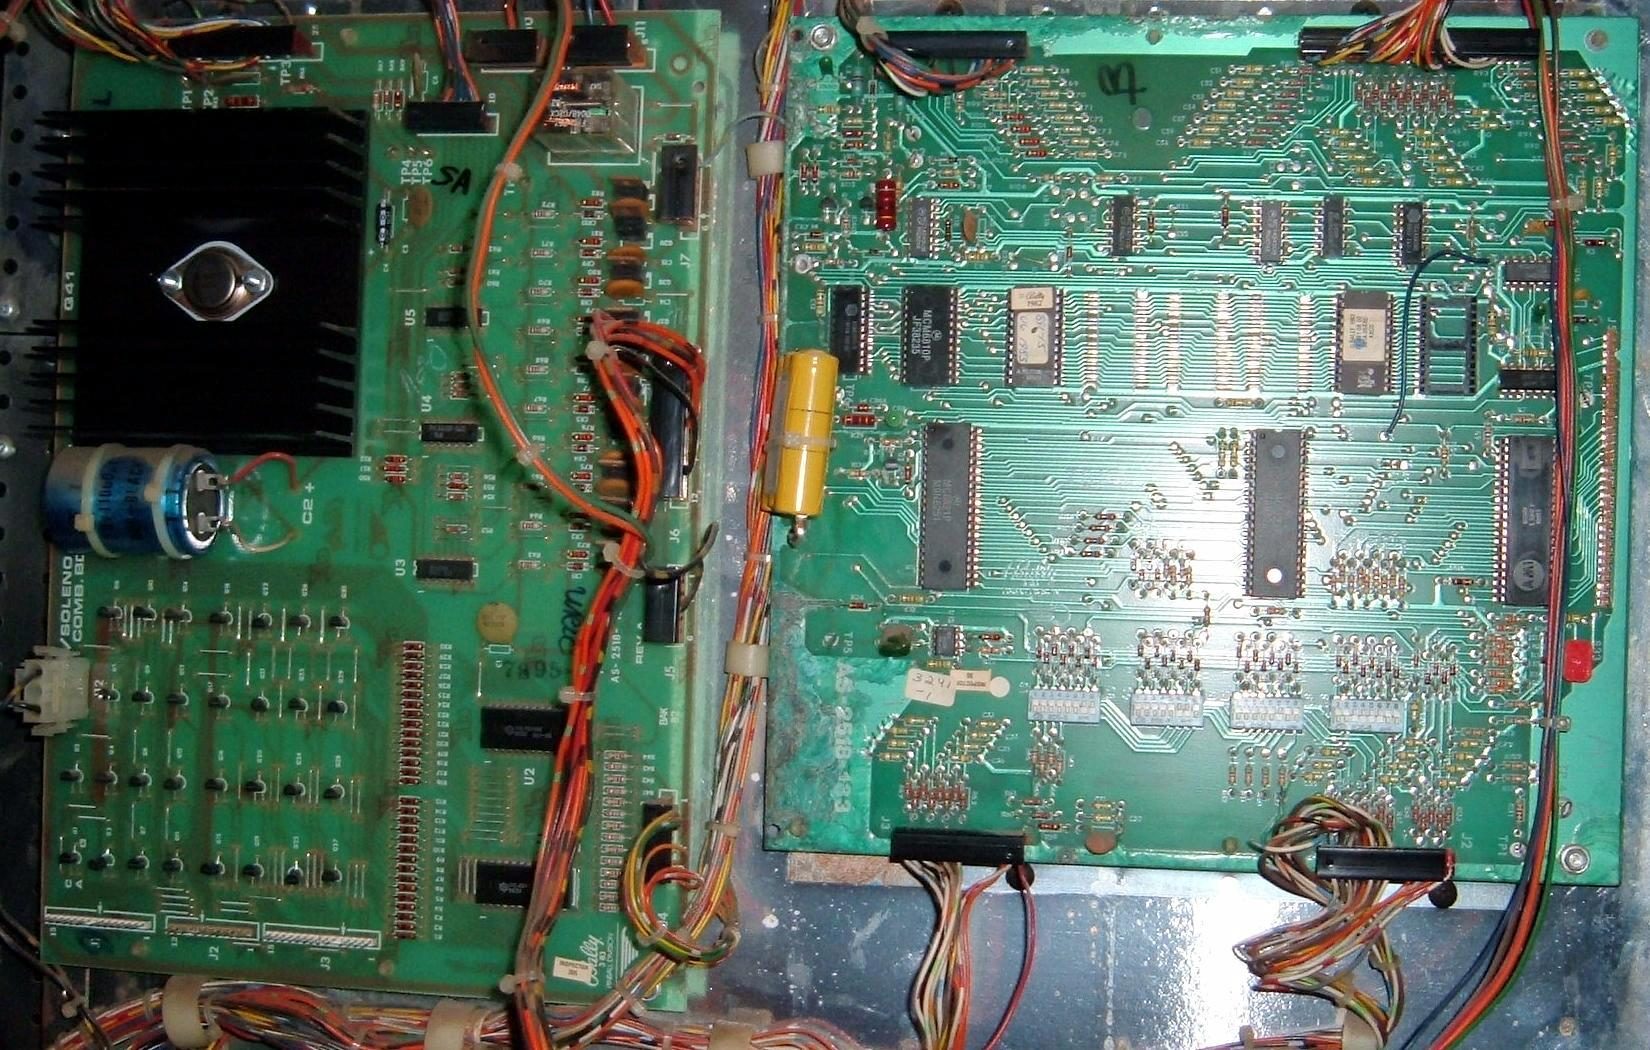 babypac8 bally baby pacman baby pac pinball video machine collector buying pacman wiring diagram at webbmarketing.co